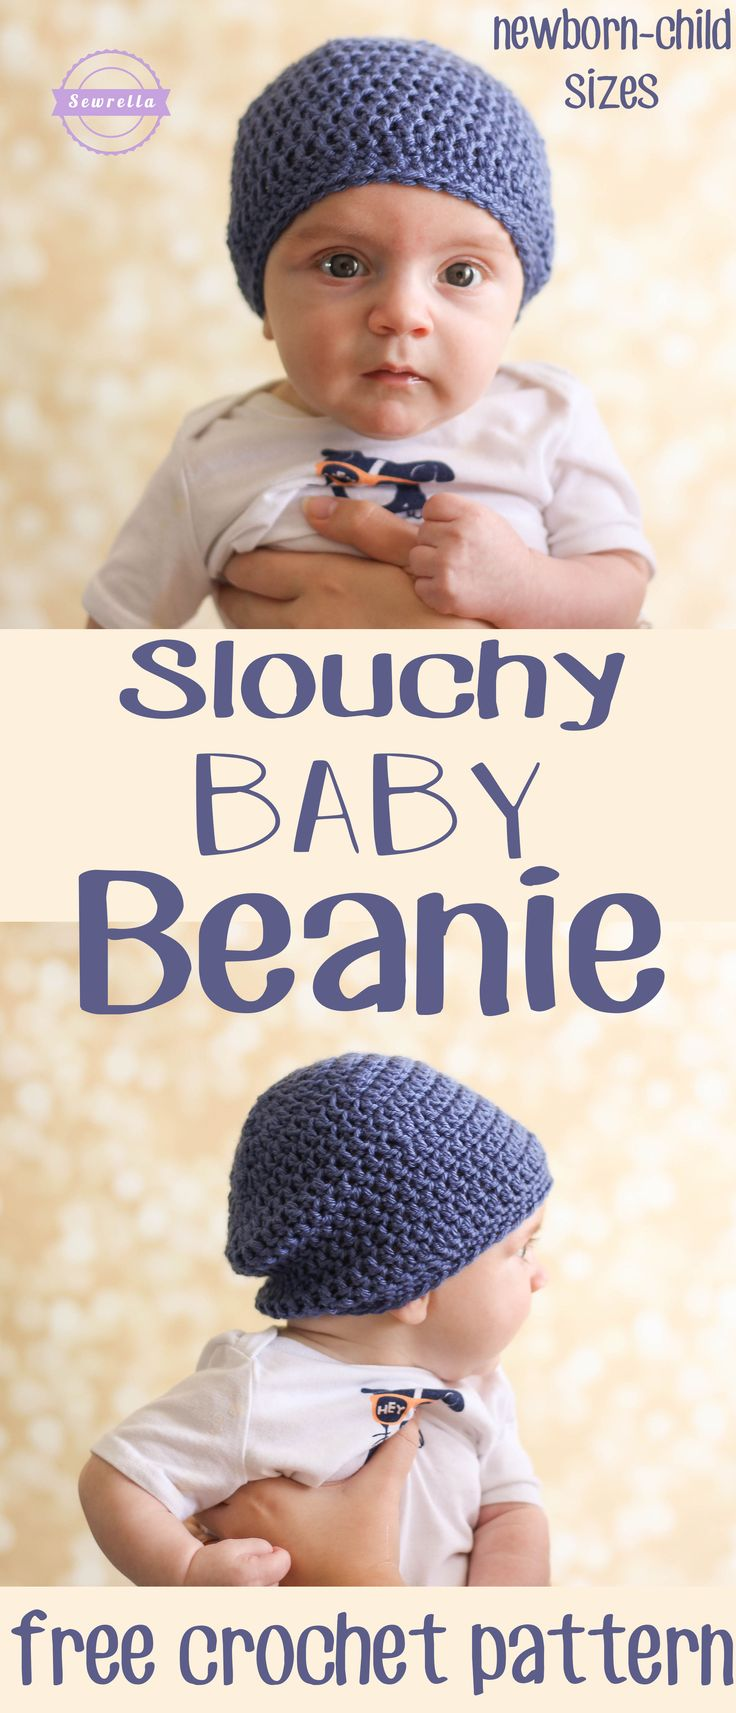 Slouchy Baby Beanie Hat | Sizes newborn - child | Free Crochet Pattern from Sewrella